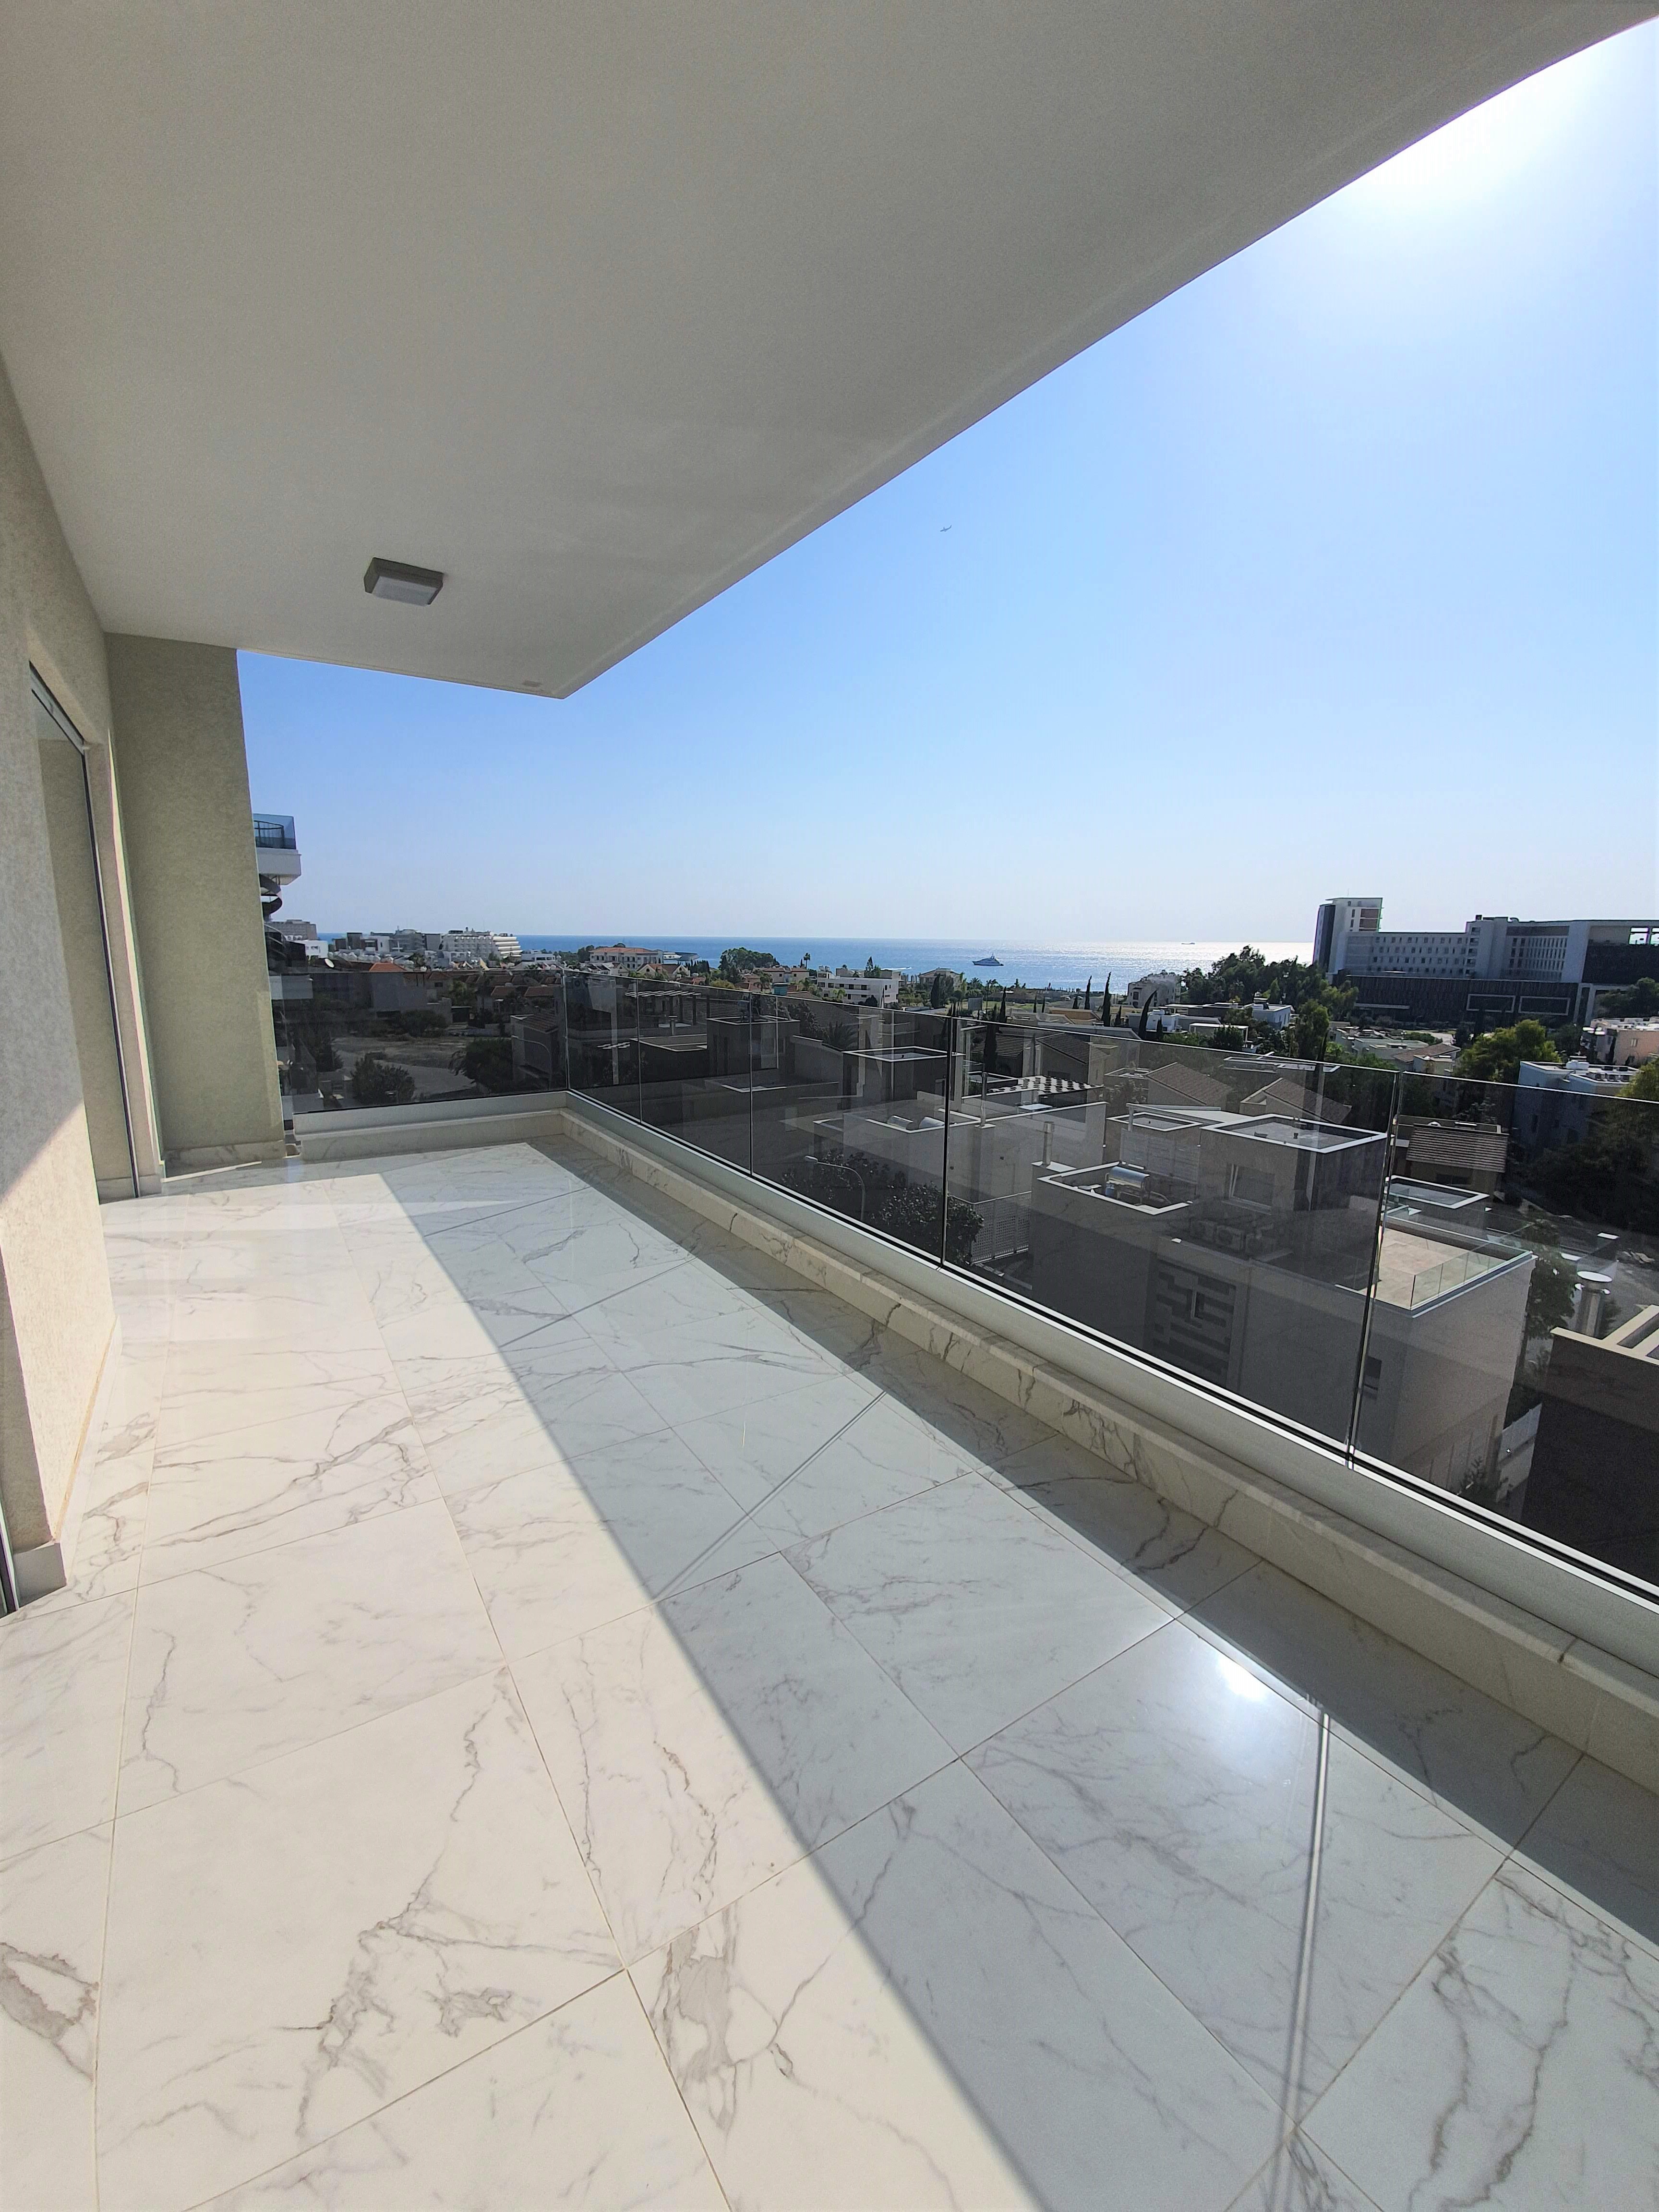 or Sale 3 Bedroom apartment in Atlantida Court C' within walking distance to the beach!